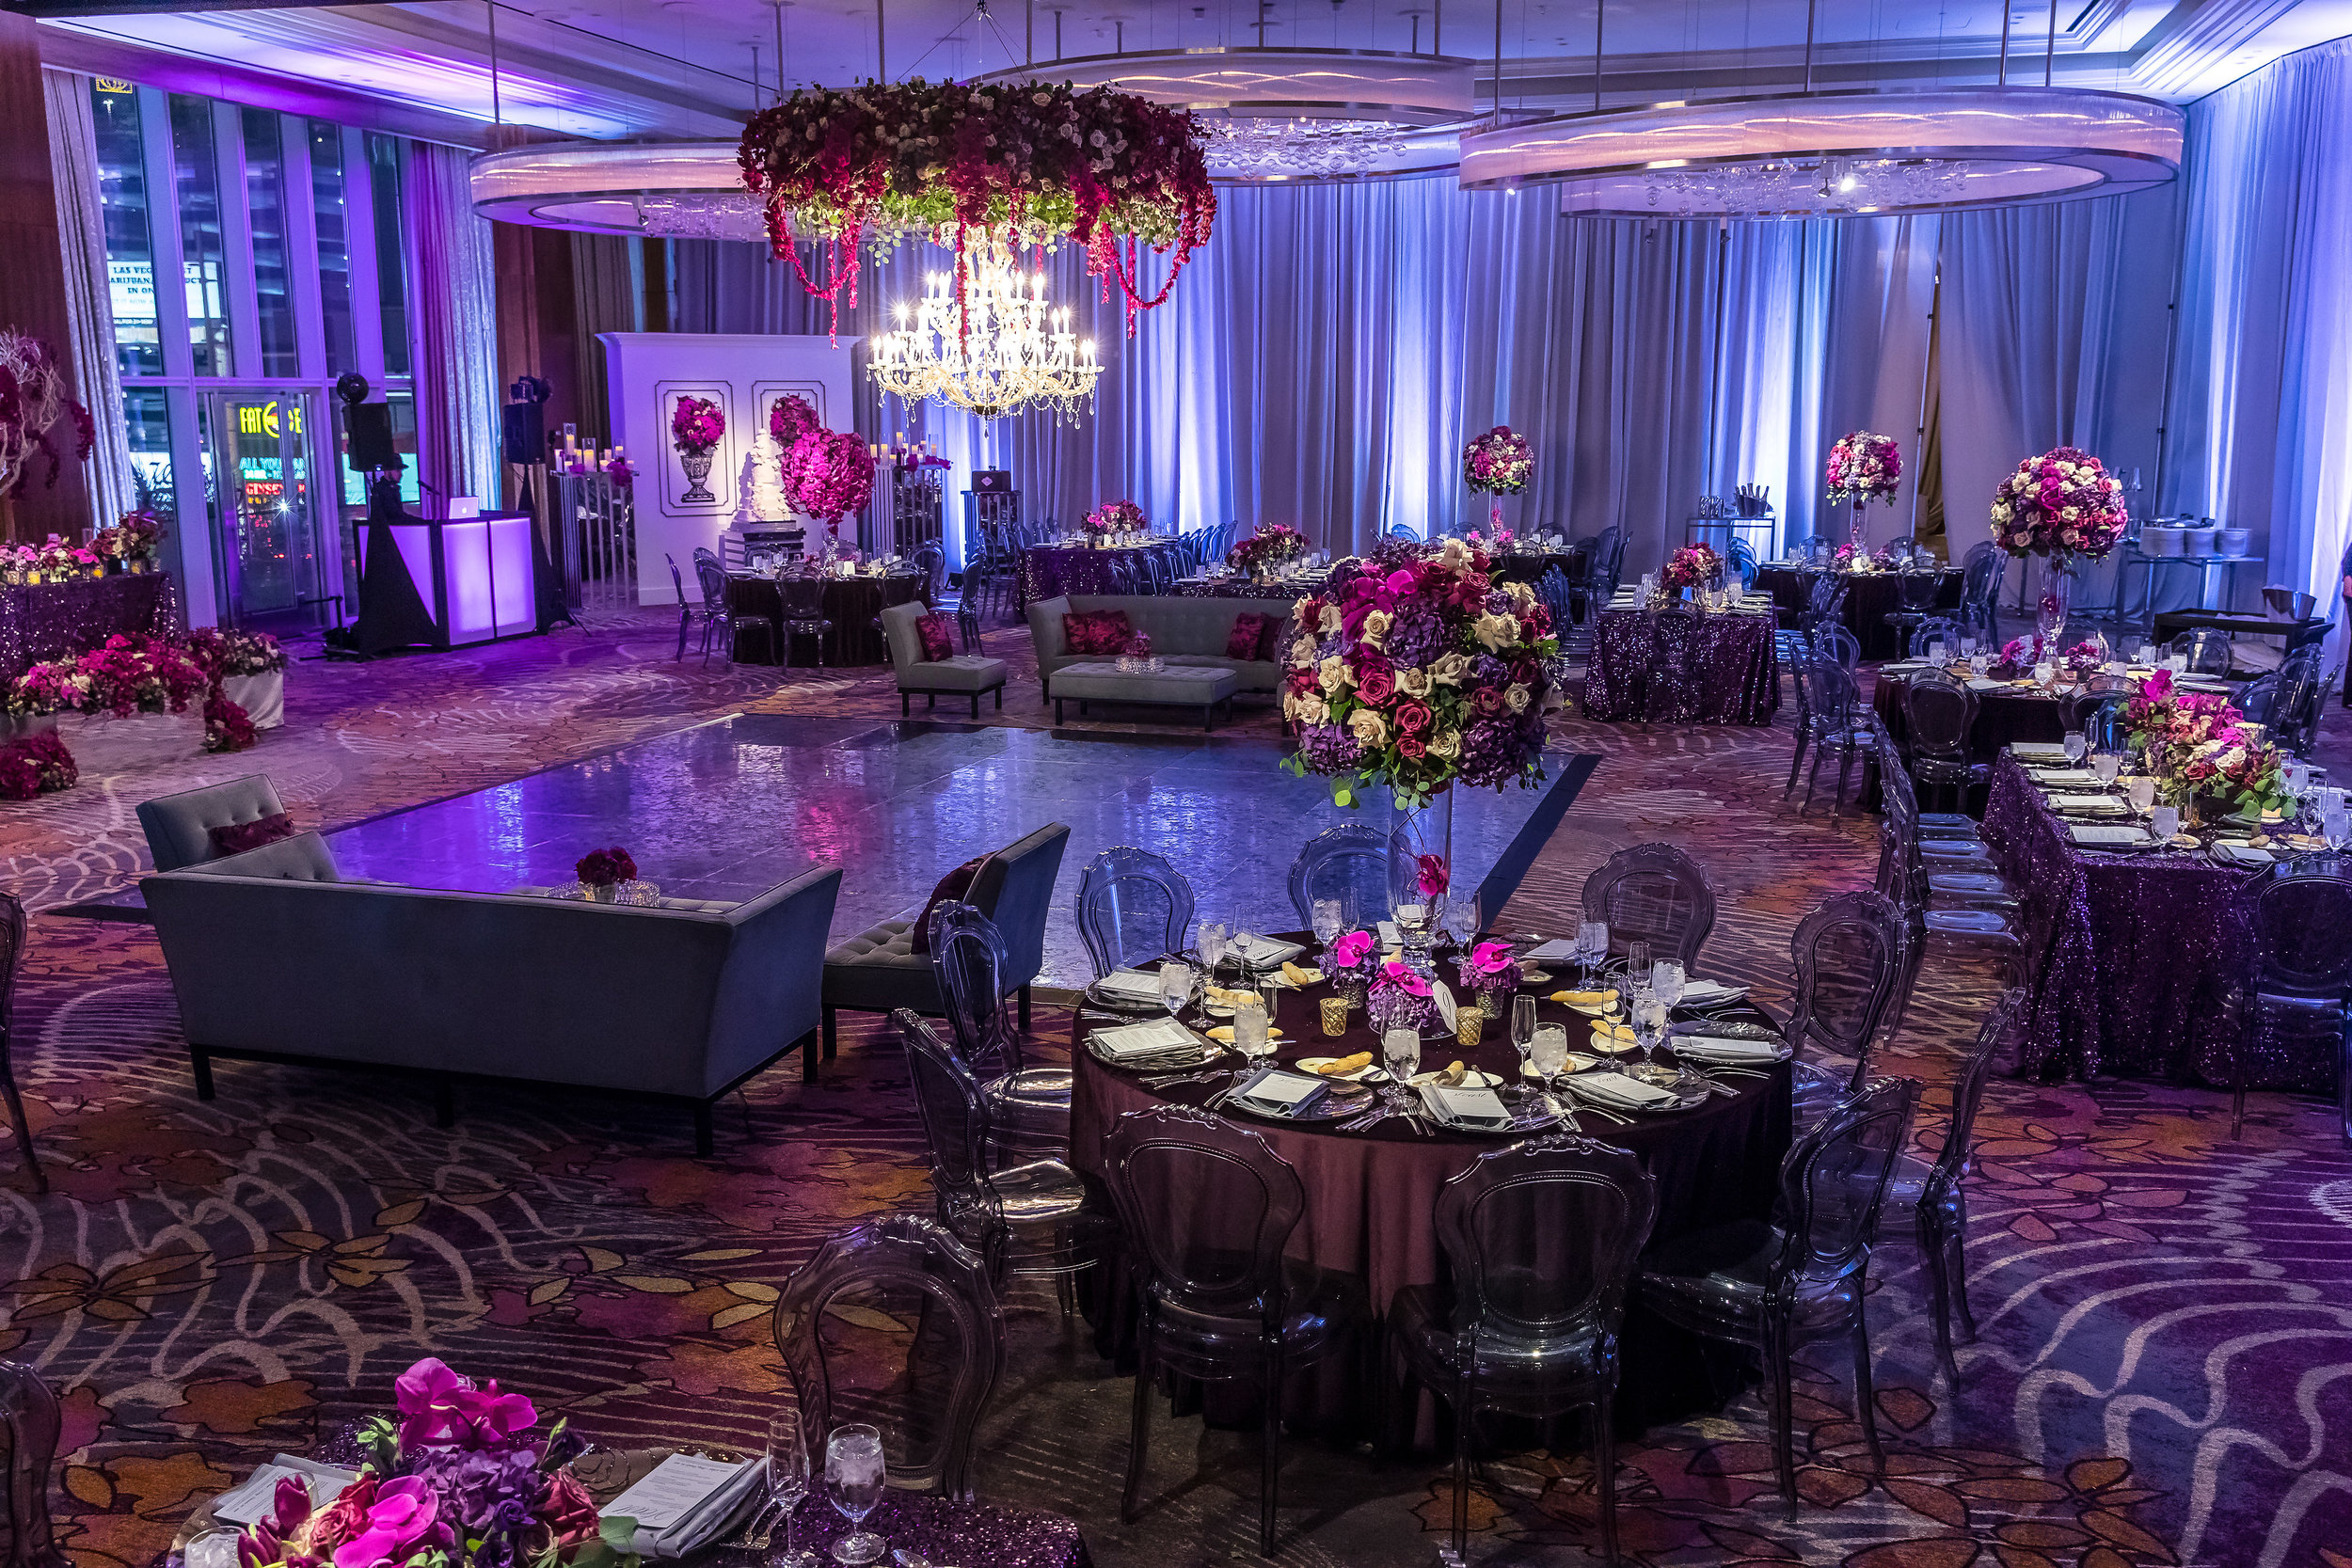 Overview of ballroom at the Mandarin Oriental / Waldorf Astoria. Luxe purple wedding at the Mandarin Oriental.Wedding Planner: Andrea Eppolito Events    Photography  Brian Leahy    Videography  HOO Films    Venue & Catering:  Mandarin Oriental  / Waldorf Astoria   Floral & Decor: Destinations by Design    Lighting: LED Unplugged    Music:  DJ Breeze II    Hair & Make Up: Amelia C & Co    Invitations by  Bliss & Bone    Menu and Escort Cards by  Meldeen